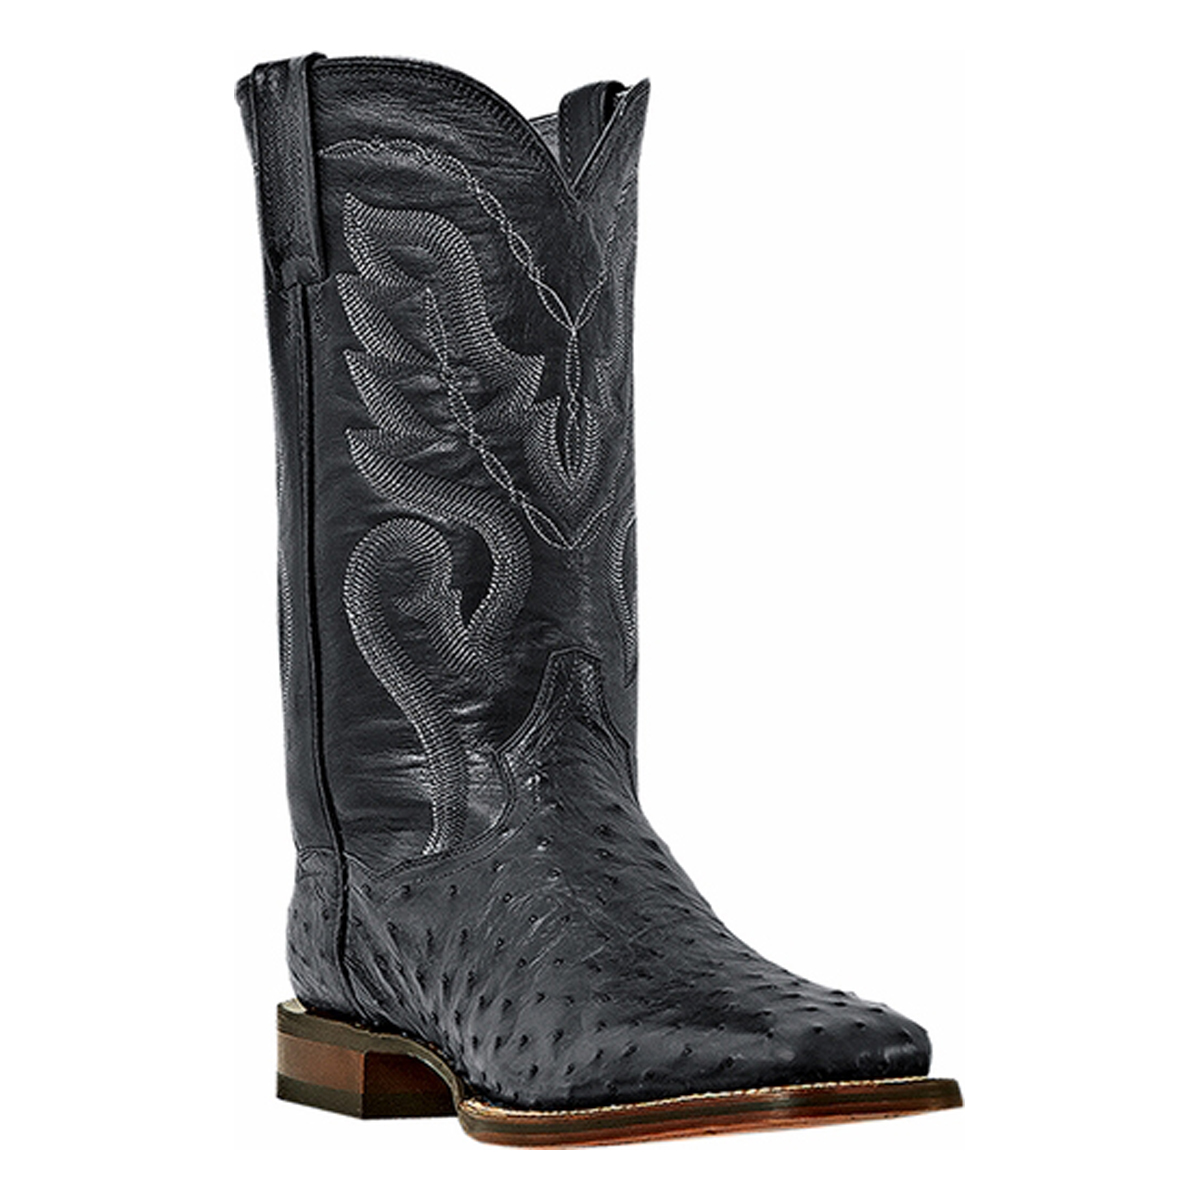 Dan Post Men's C C Black Full Quill Ostrich Chandler Western Boots DP2980 by Dan Post